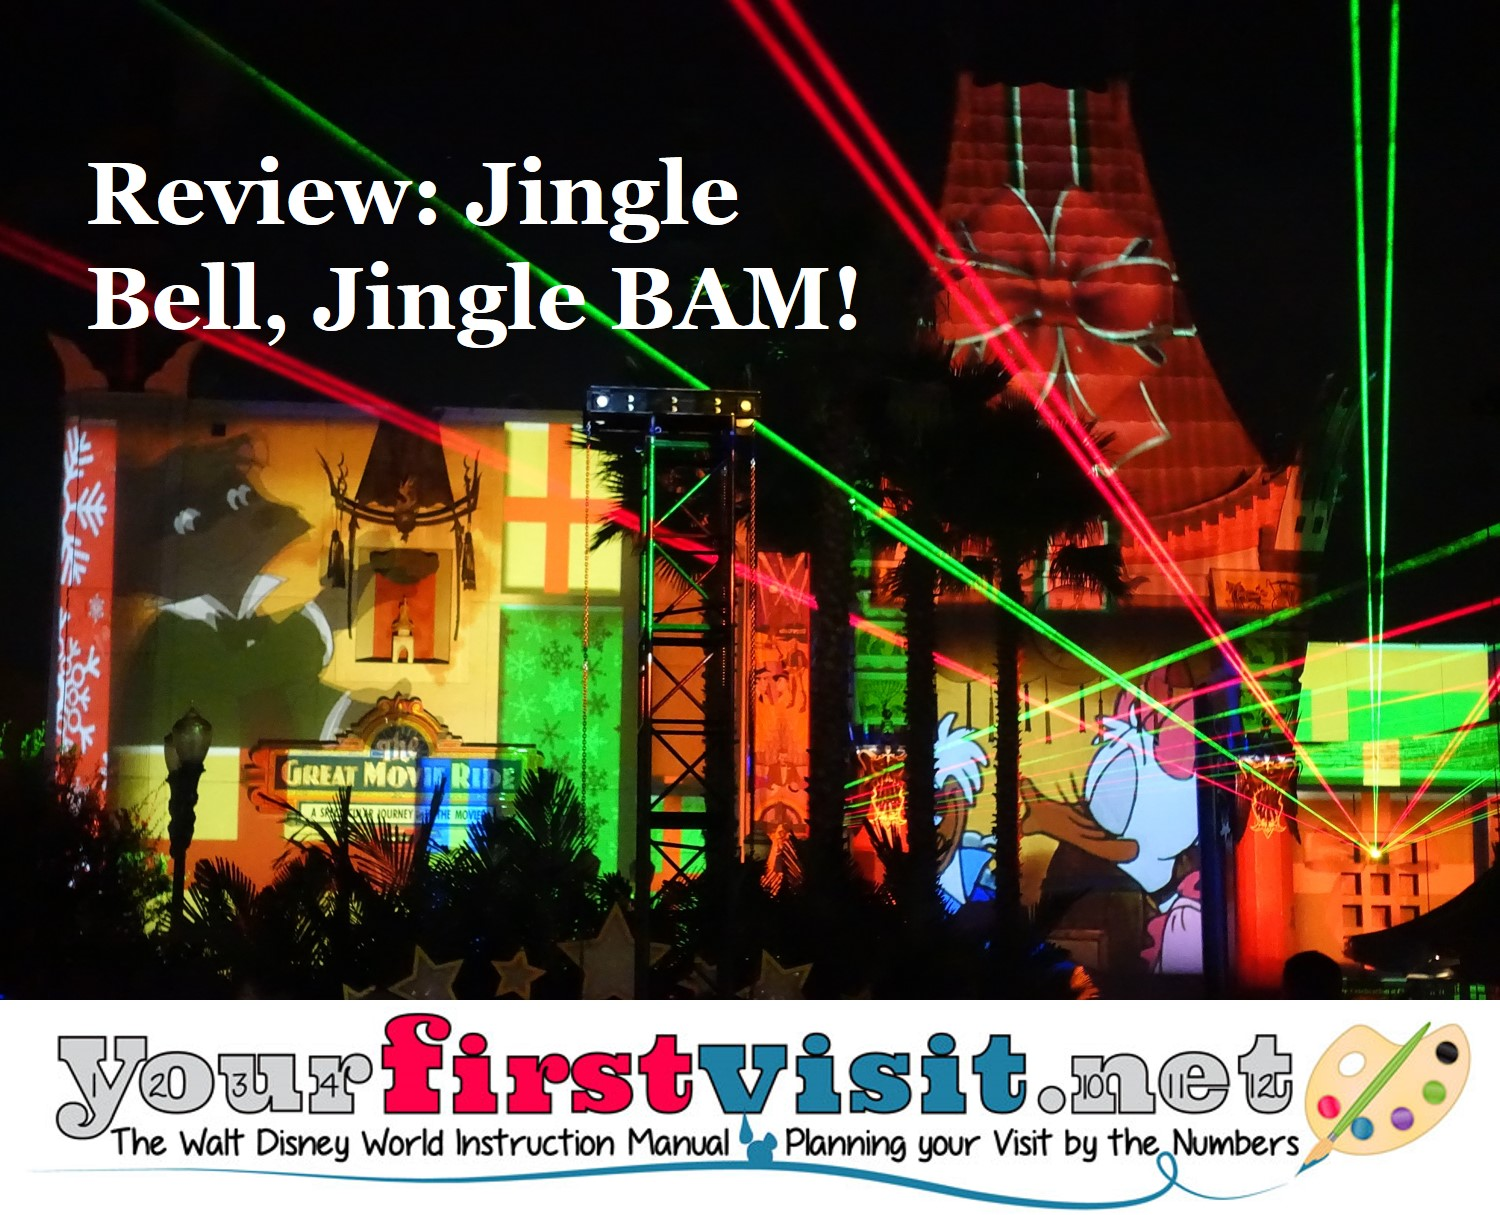 review-jingle-bell-jingle-bam-at-disneys-hollywood-studios-from-yourfirstvisit-net